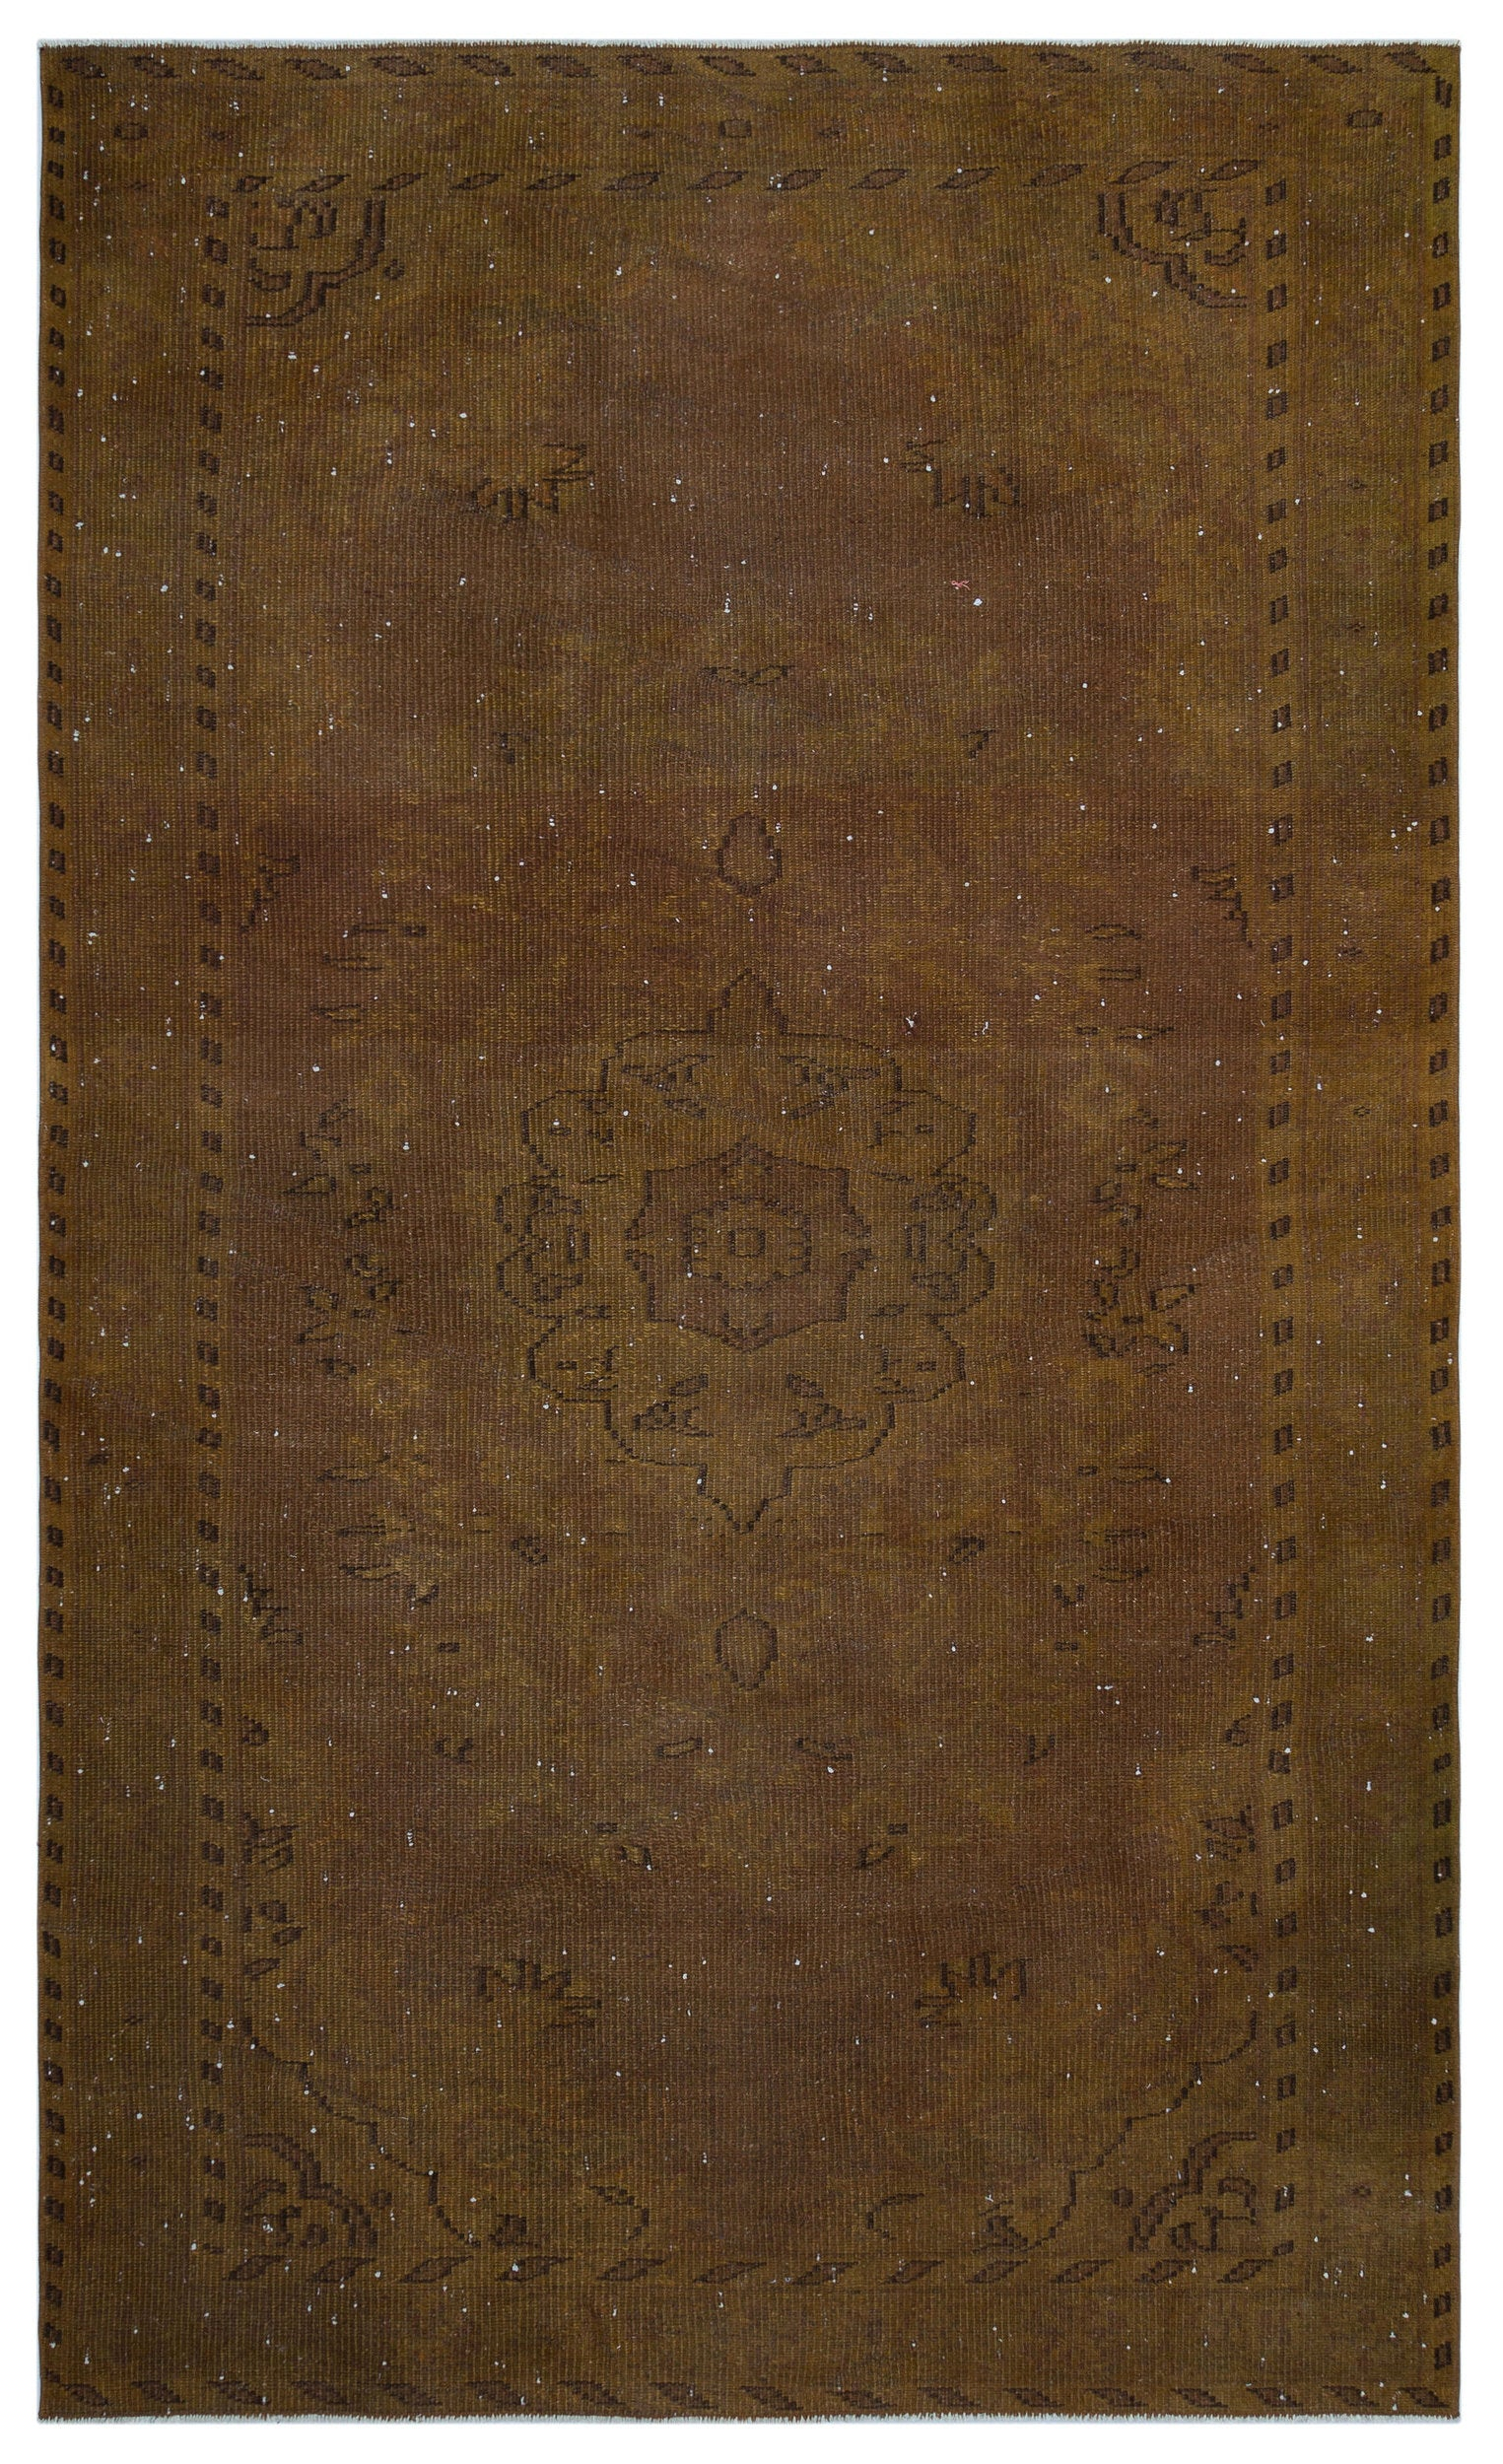 Brown Over Dyed Vintage Rug 5'4'' x 8'10'' ft 163 x 270 cm